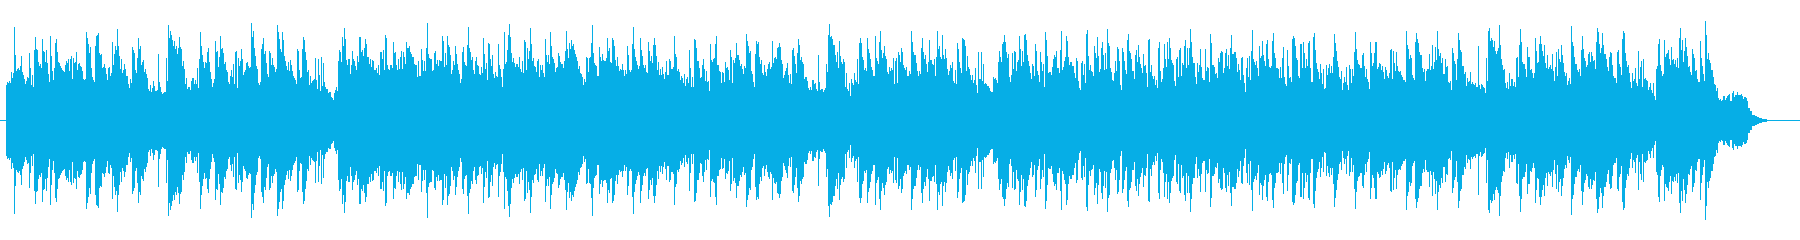 A gentle and gentle piano ballad's reproduced waveform